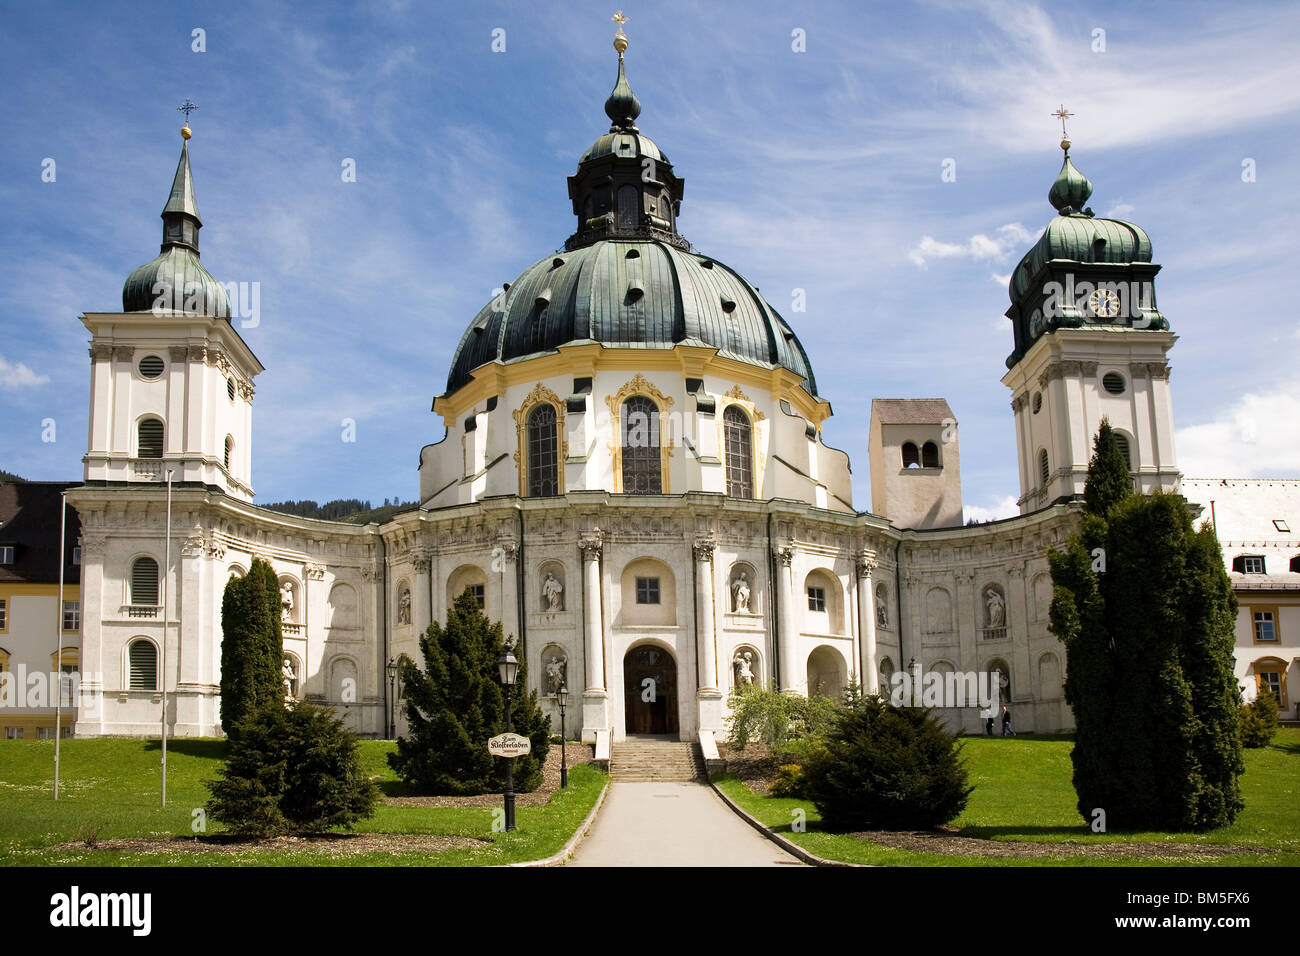 the baroque style ettal abbey kloster ettal at ettal in. Black Bedroom Furniture Sets. Home Design Ideas